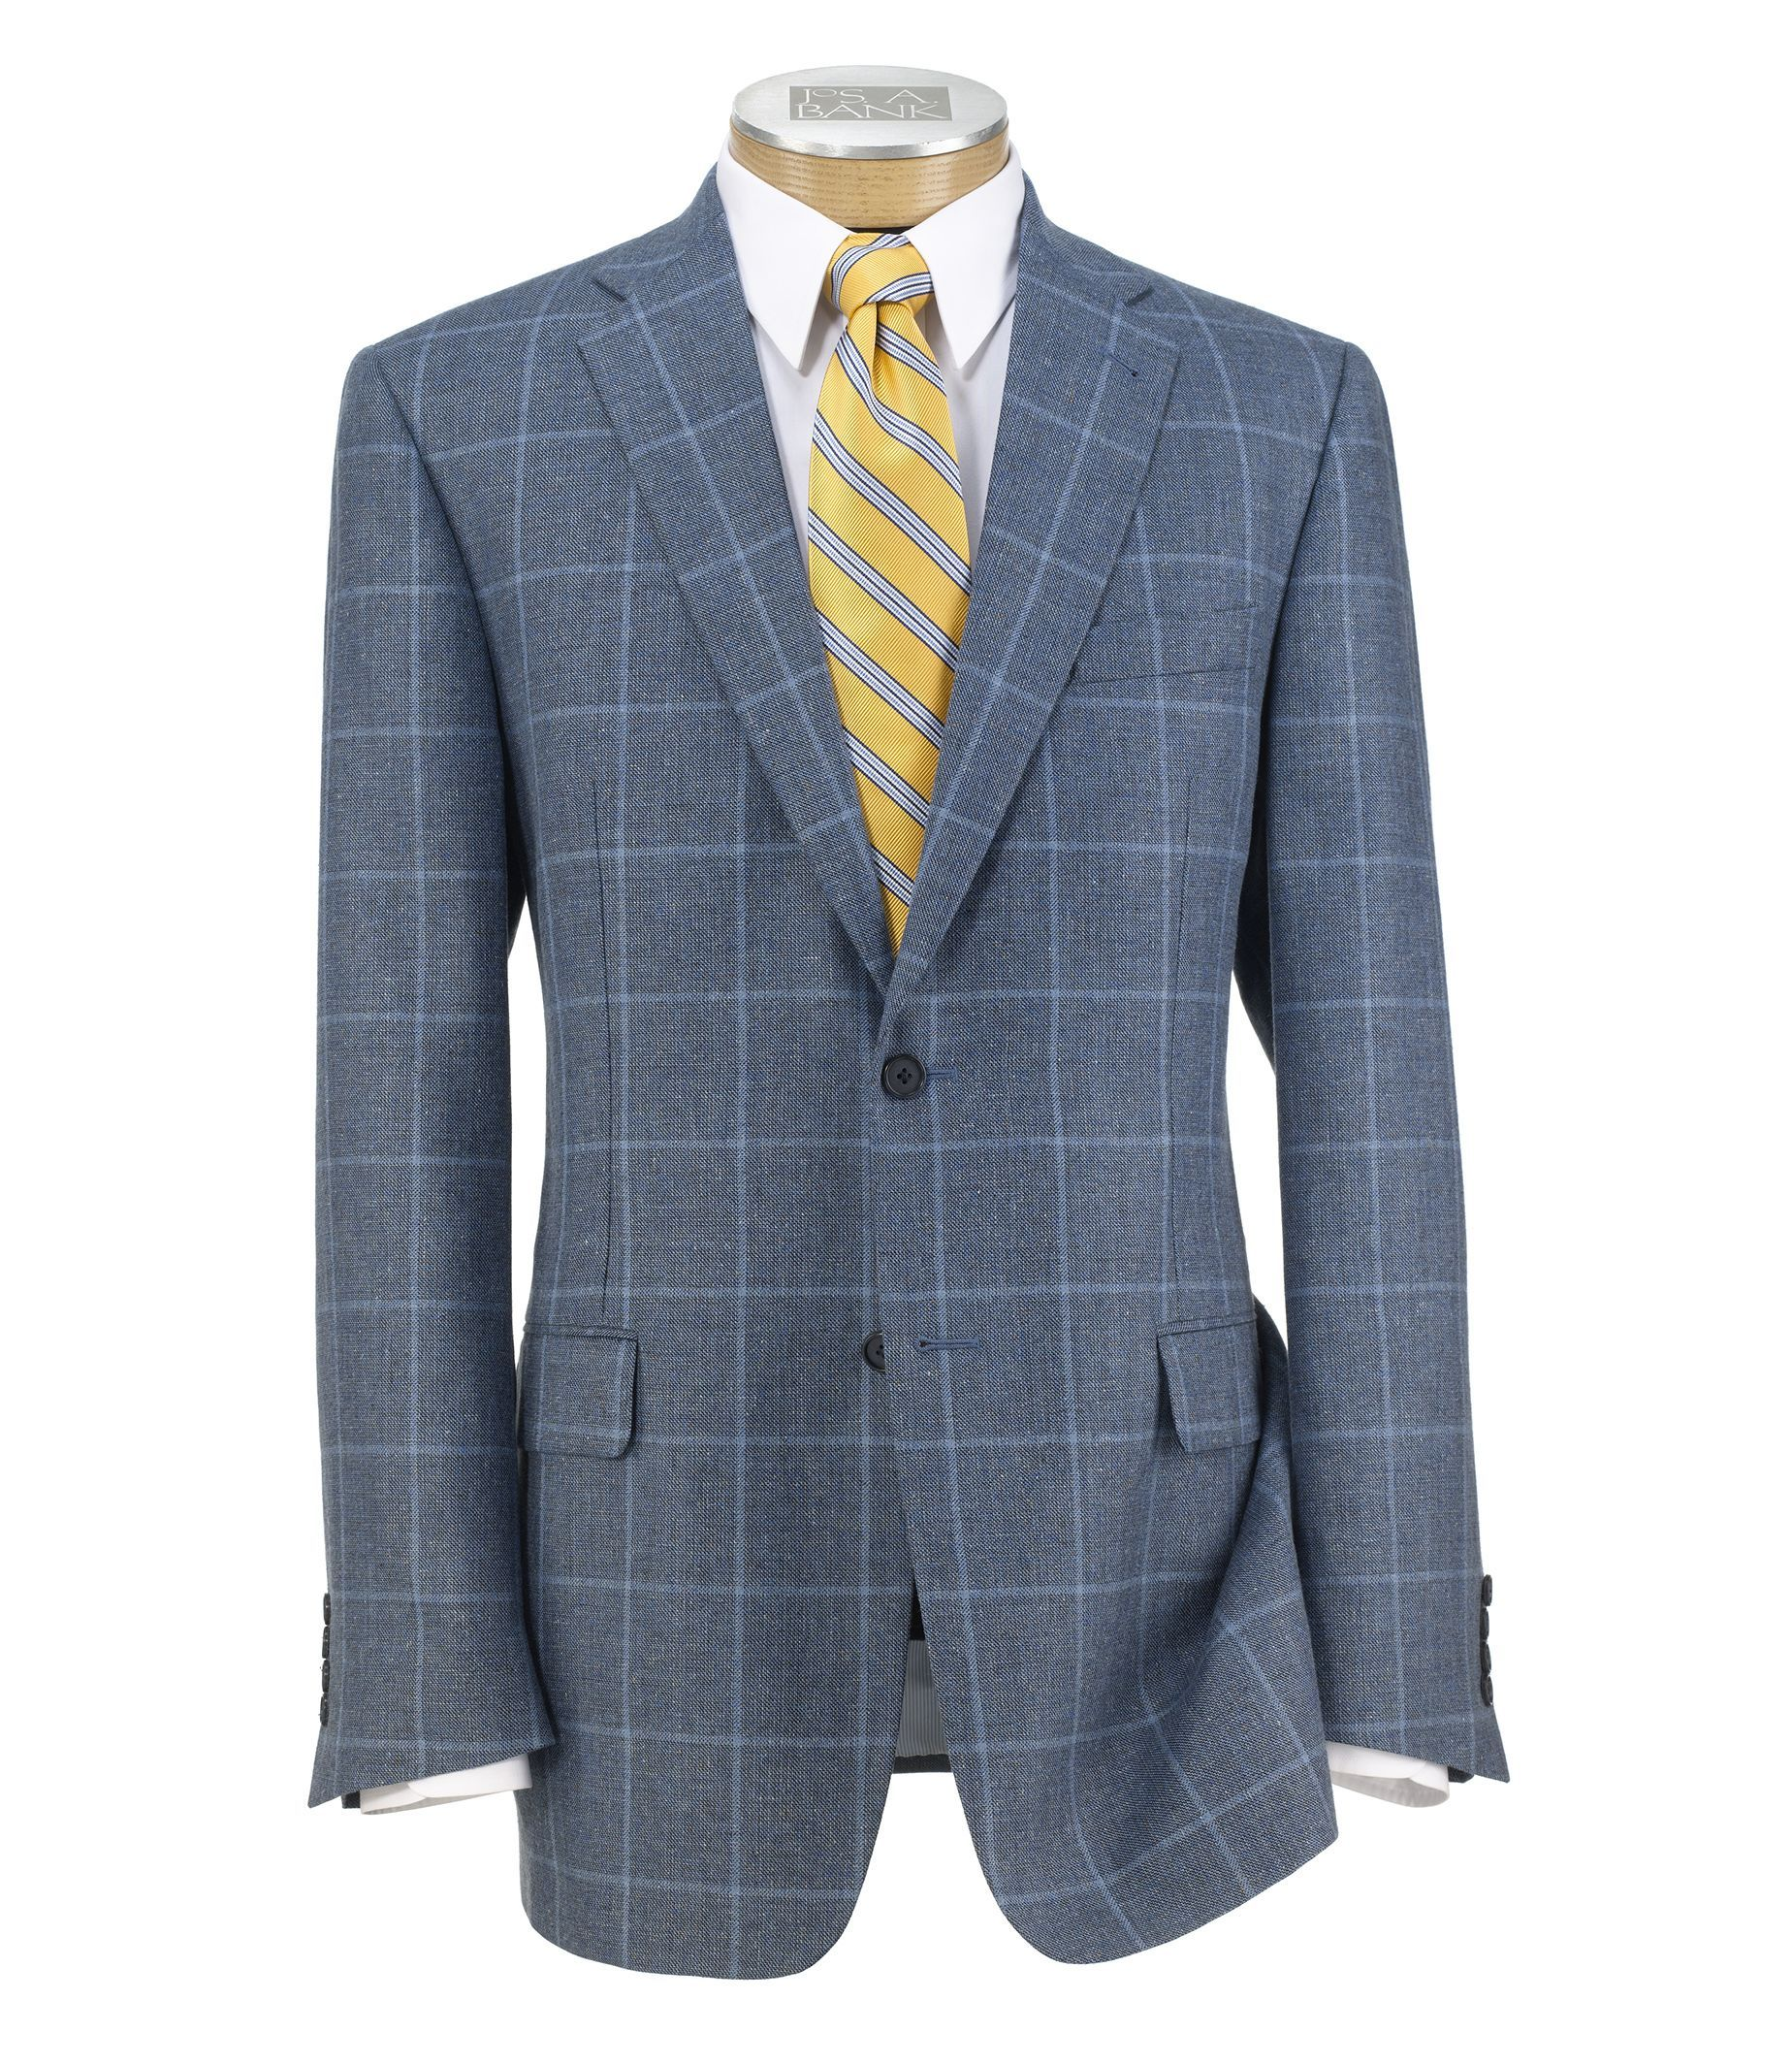 Signature 2-Button Tailored Fit Patterned Sportcoat CLEARANCE ...